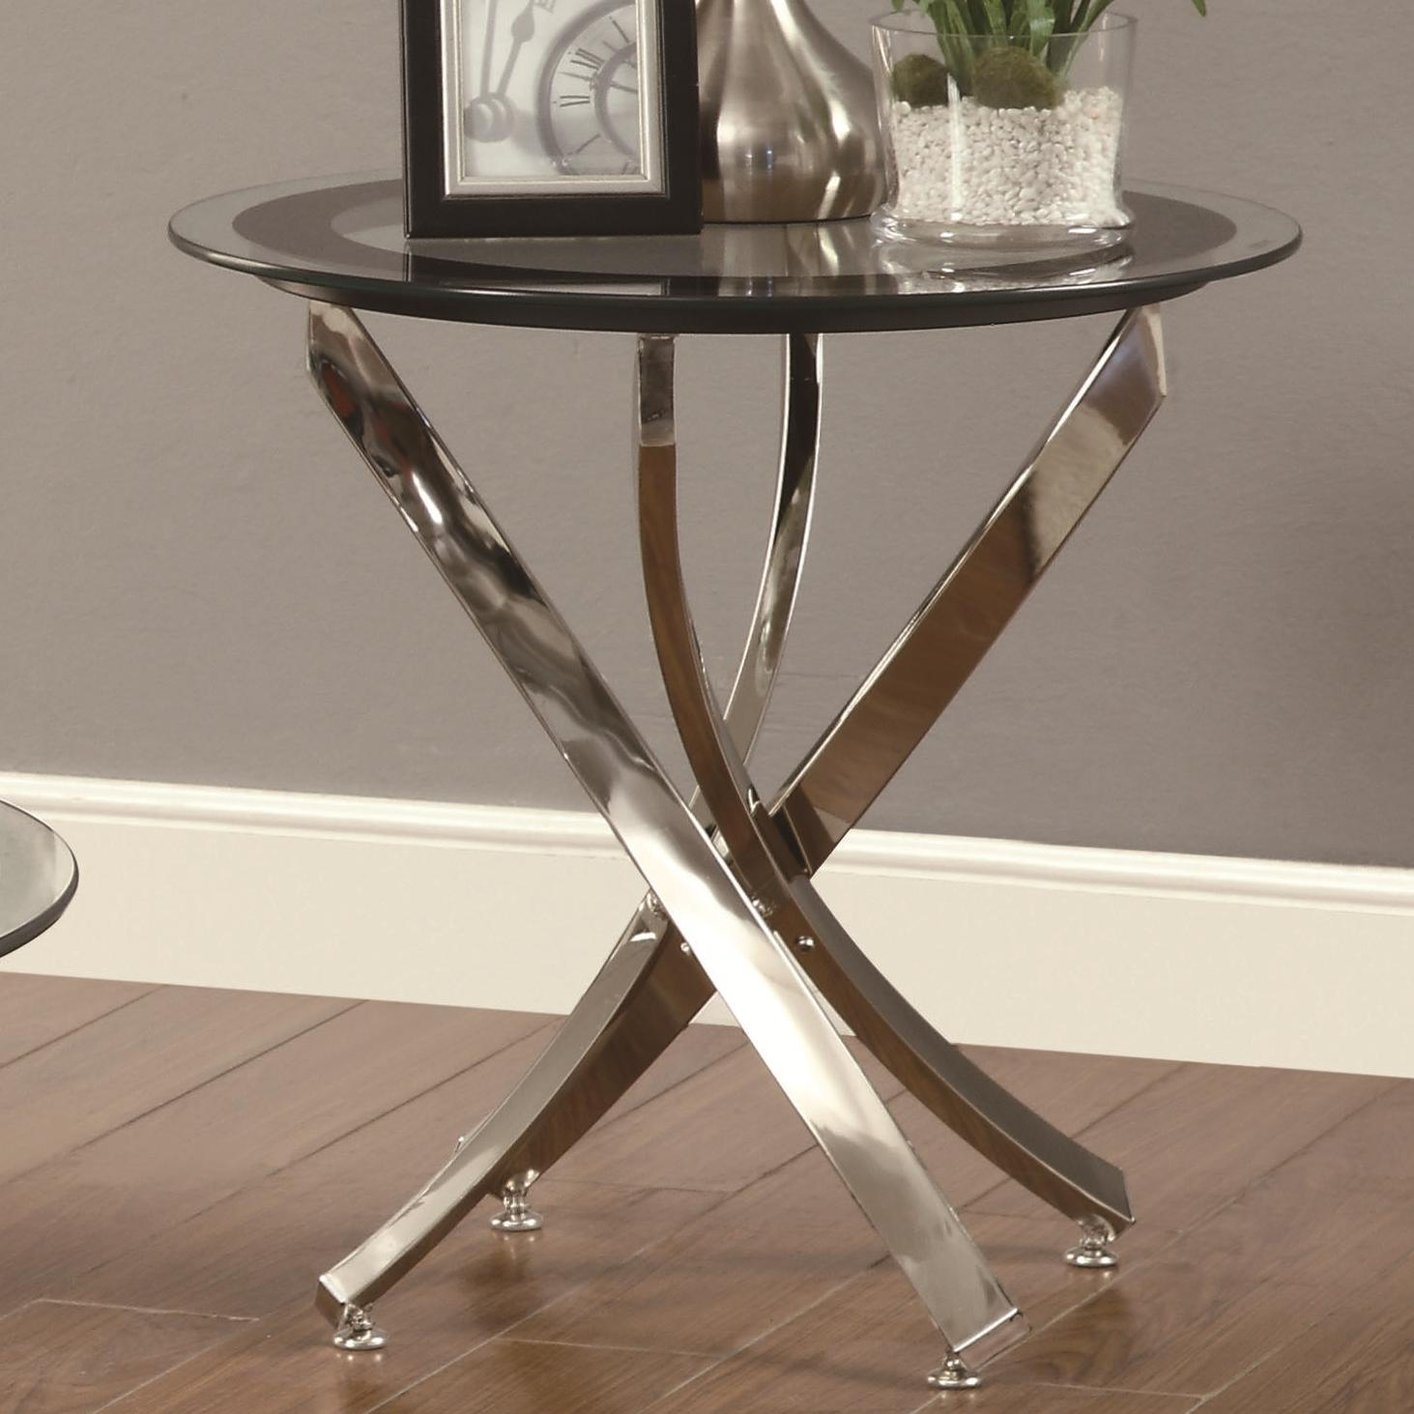 Coaster 702587 Silver Glass End Table Steal A Sofa Furniture Outlet Los Angeles Ca